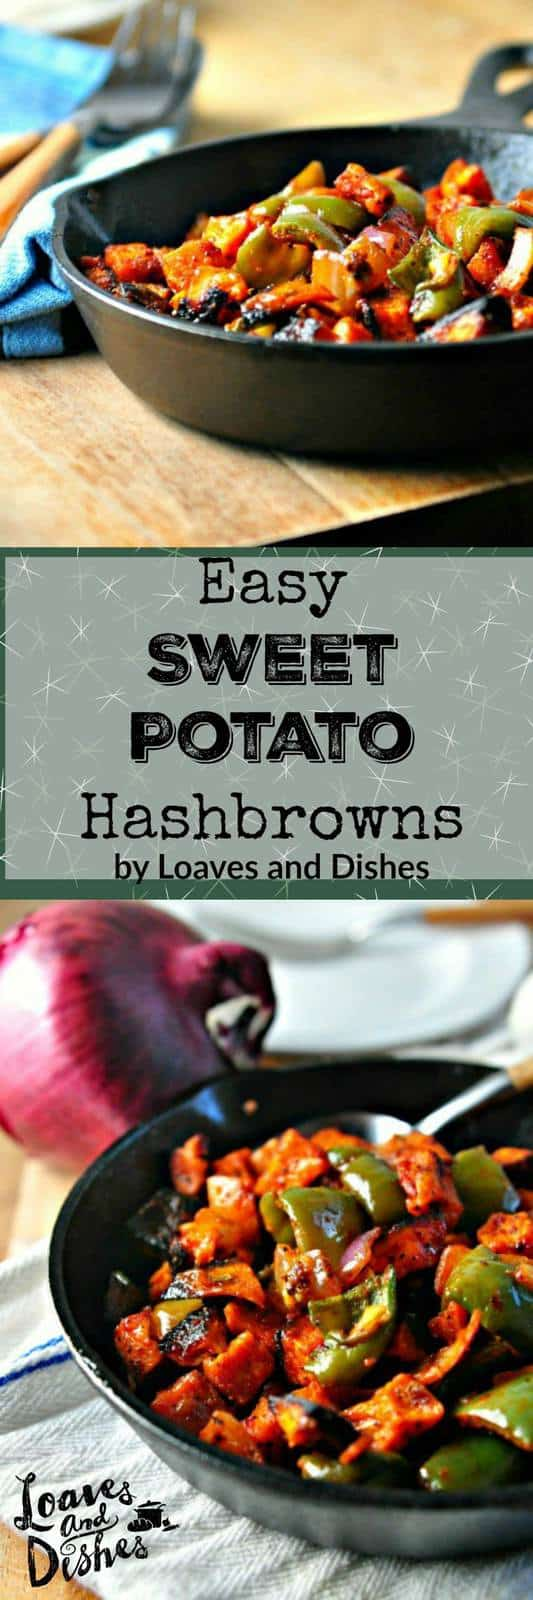 Need a quick and easy dinner OR breakfast dish?  Try sweet potatoes in a whole new way!  Savory Hashbrowns!  YUM!